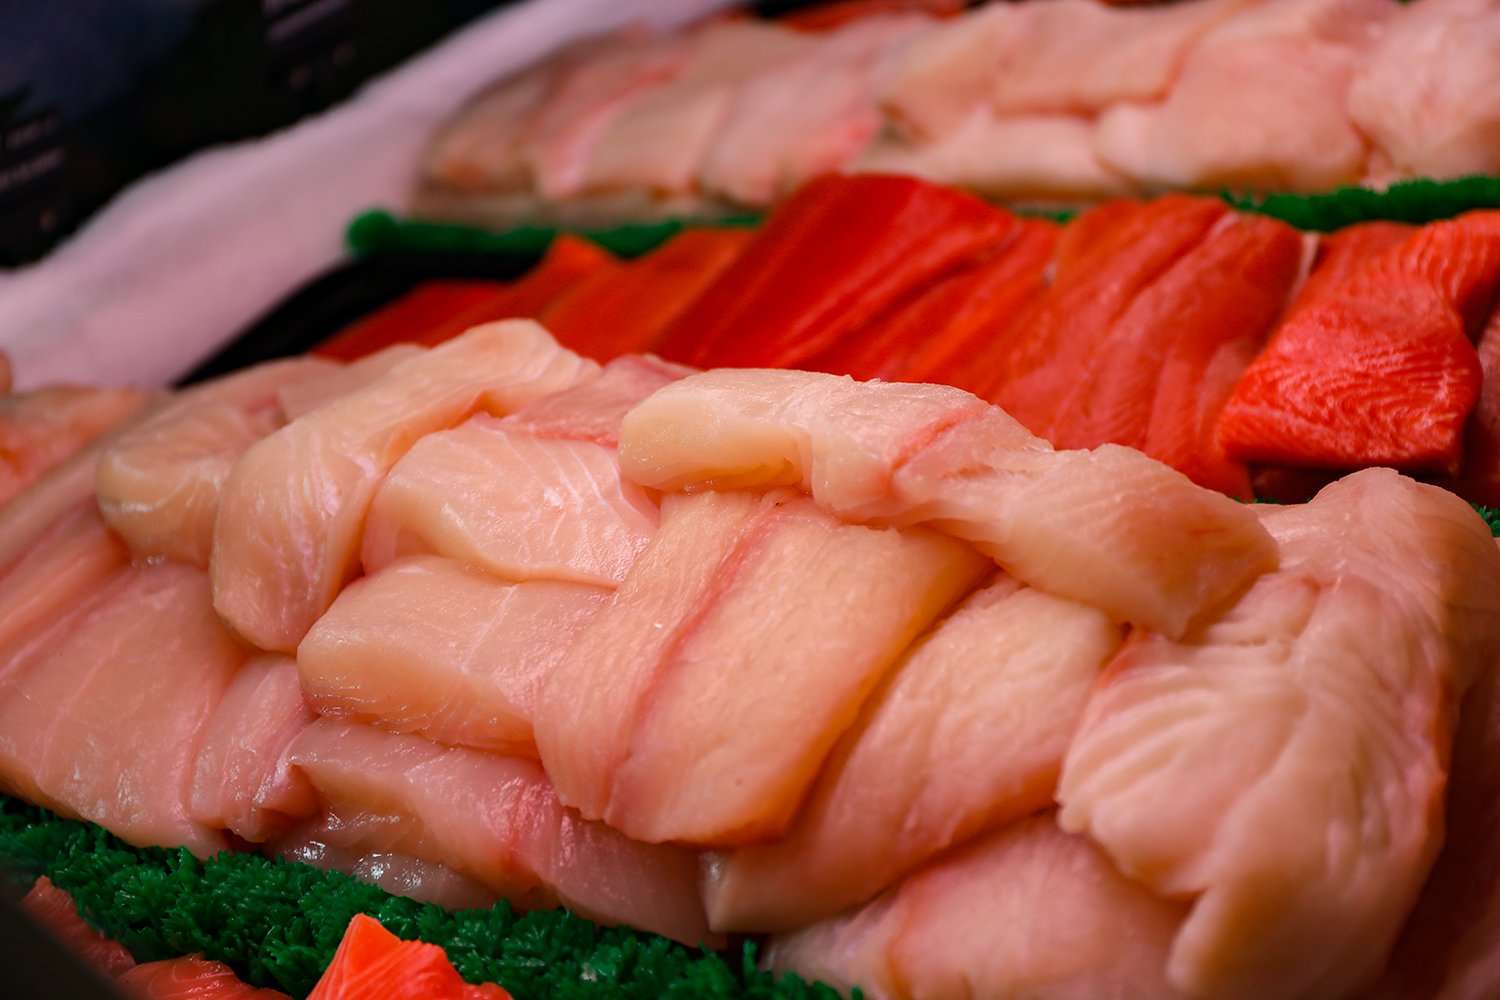 Want to know how to prepare fresh seafood? These tips will help a TON!